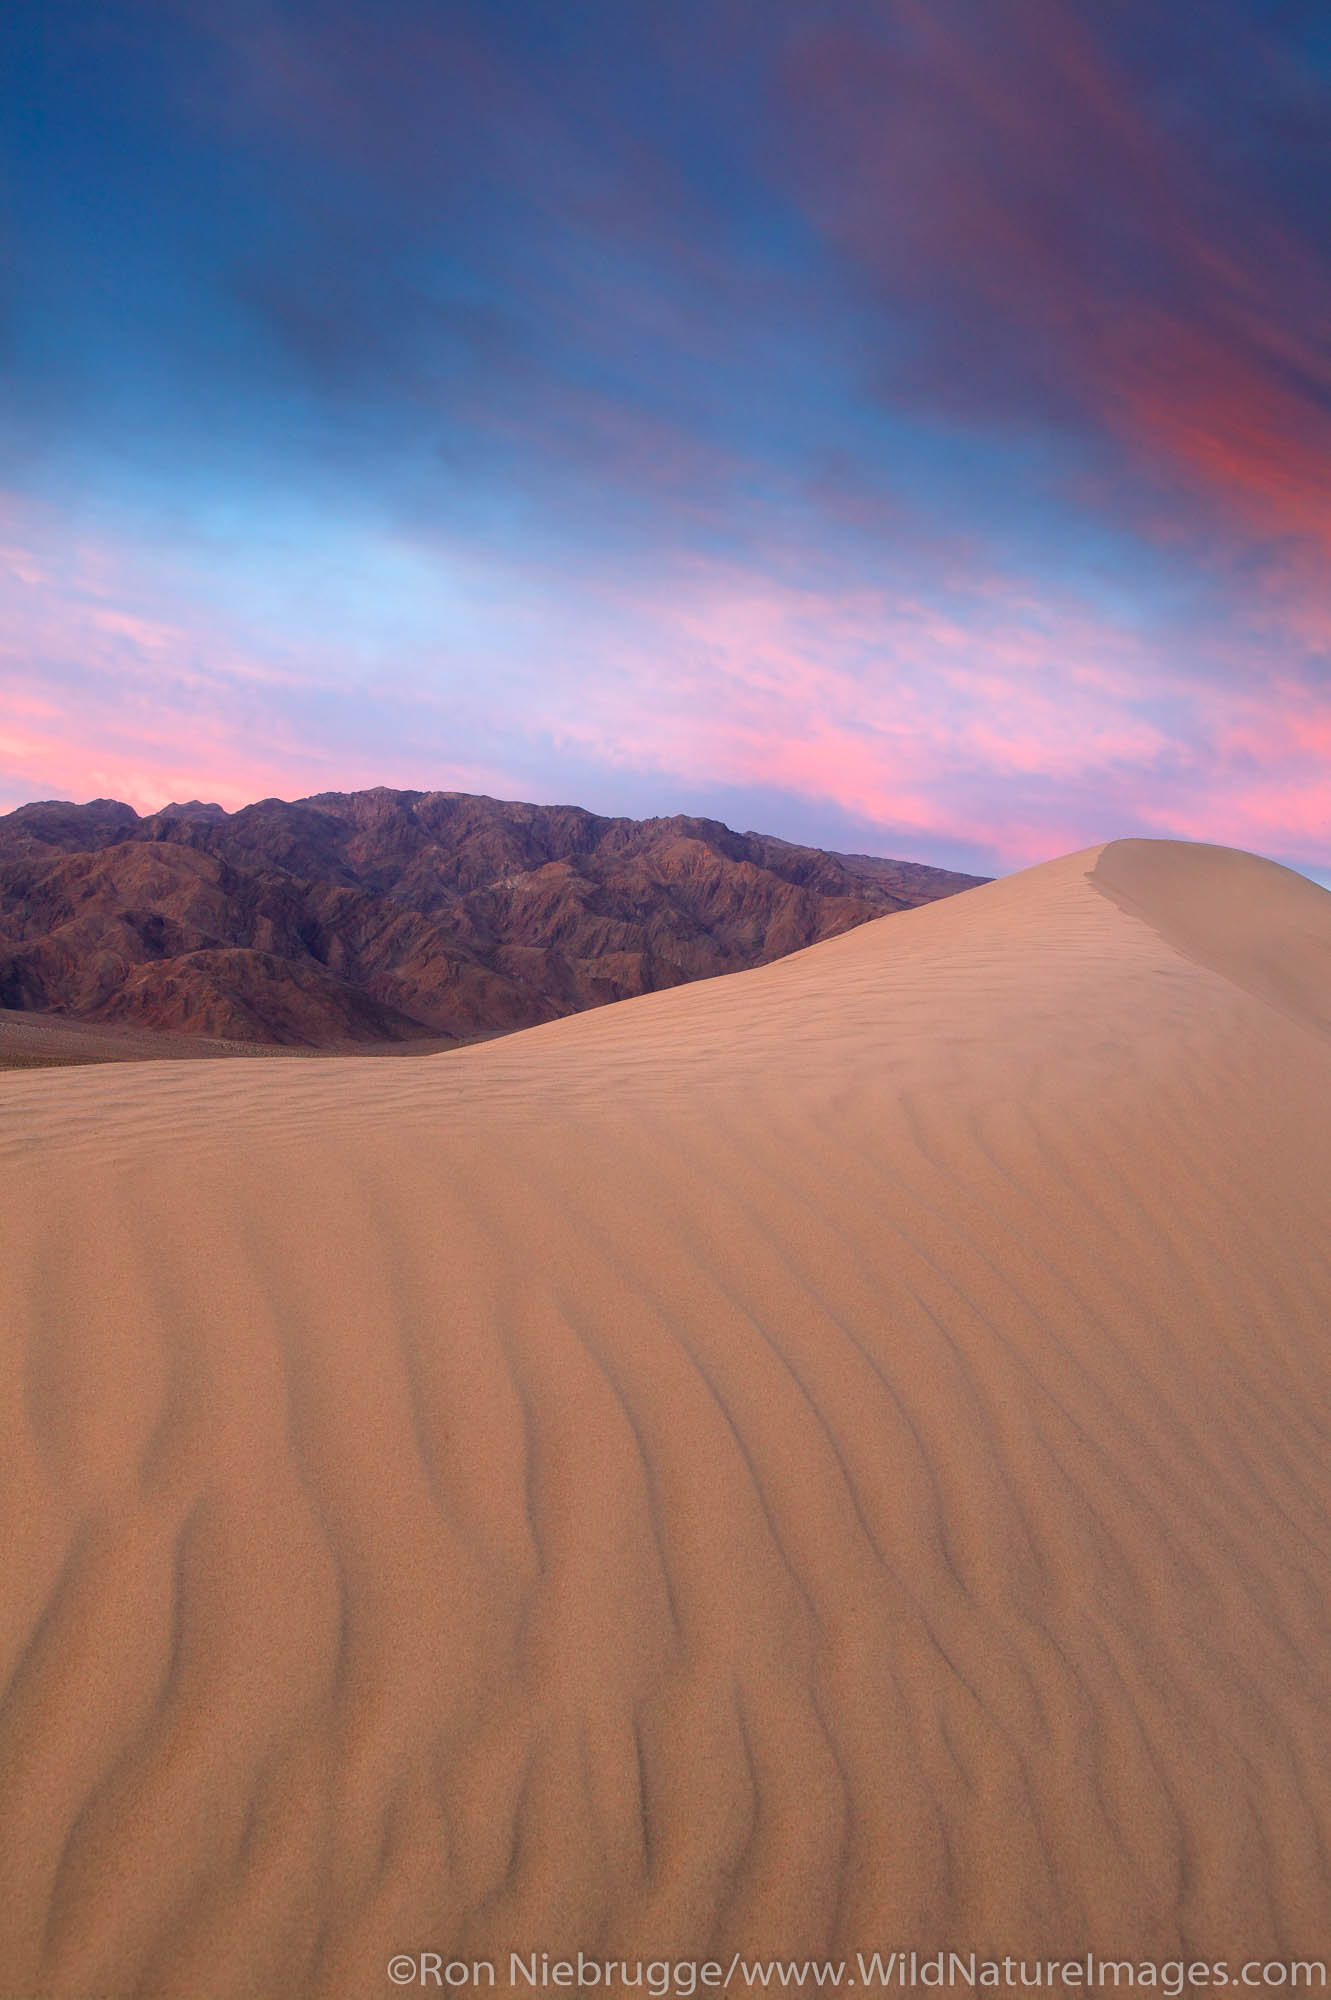 Sand dunes near Stovepipe Wells and Tucki Mountain of the Panamint Range, Death Valley National Park, California.